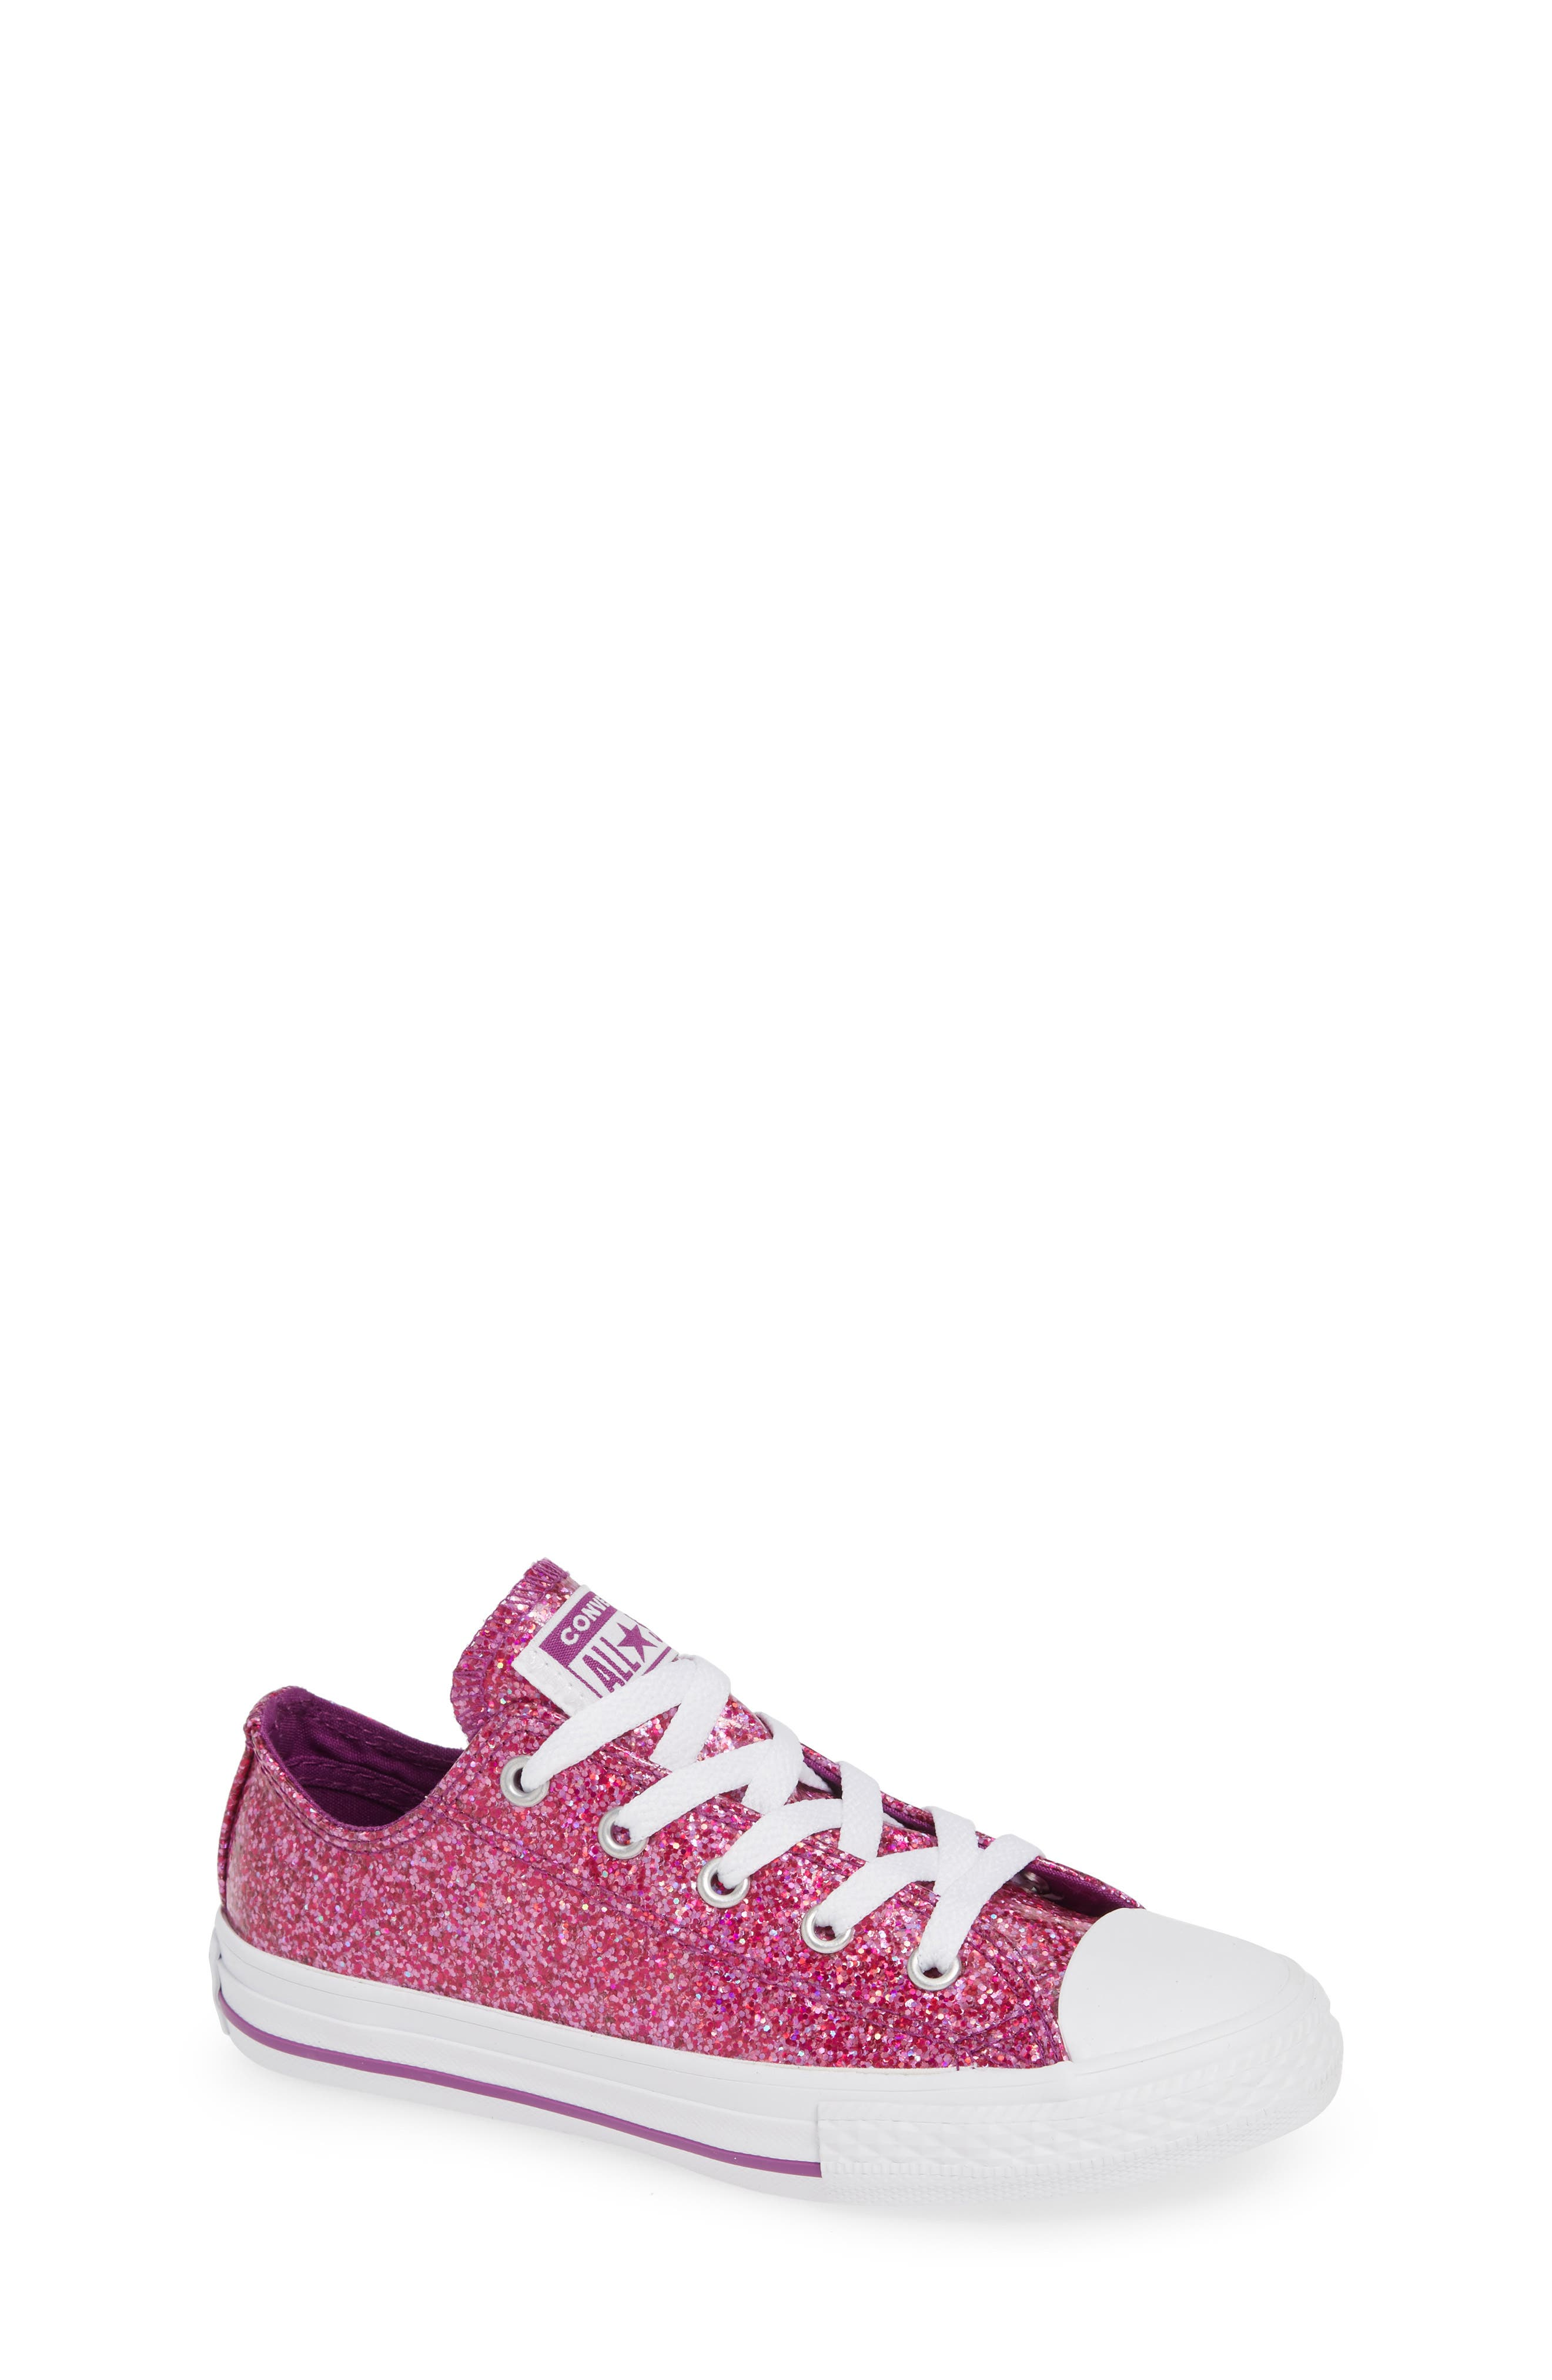 All Star<sup>®</sup> Seasonal Glitter OX Low Top Sneaker,                         Main,                         color, ICON VIOLET